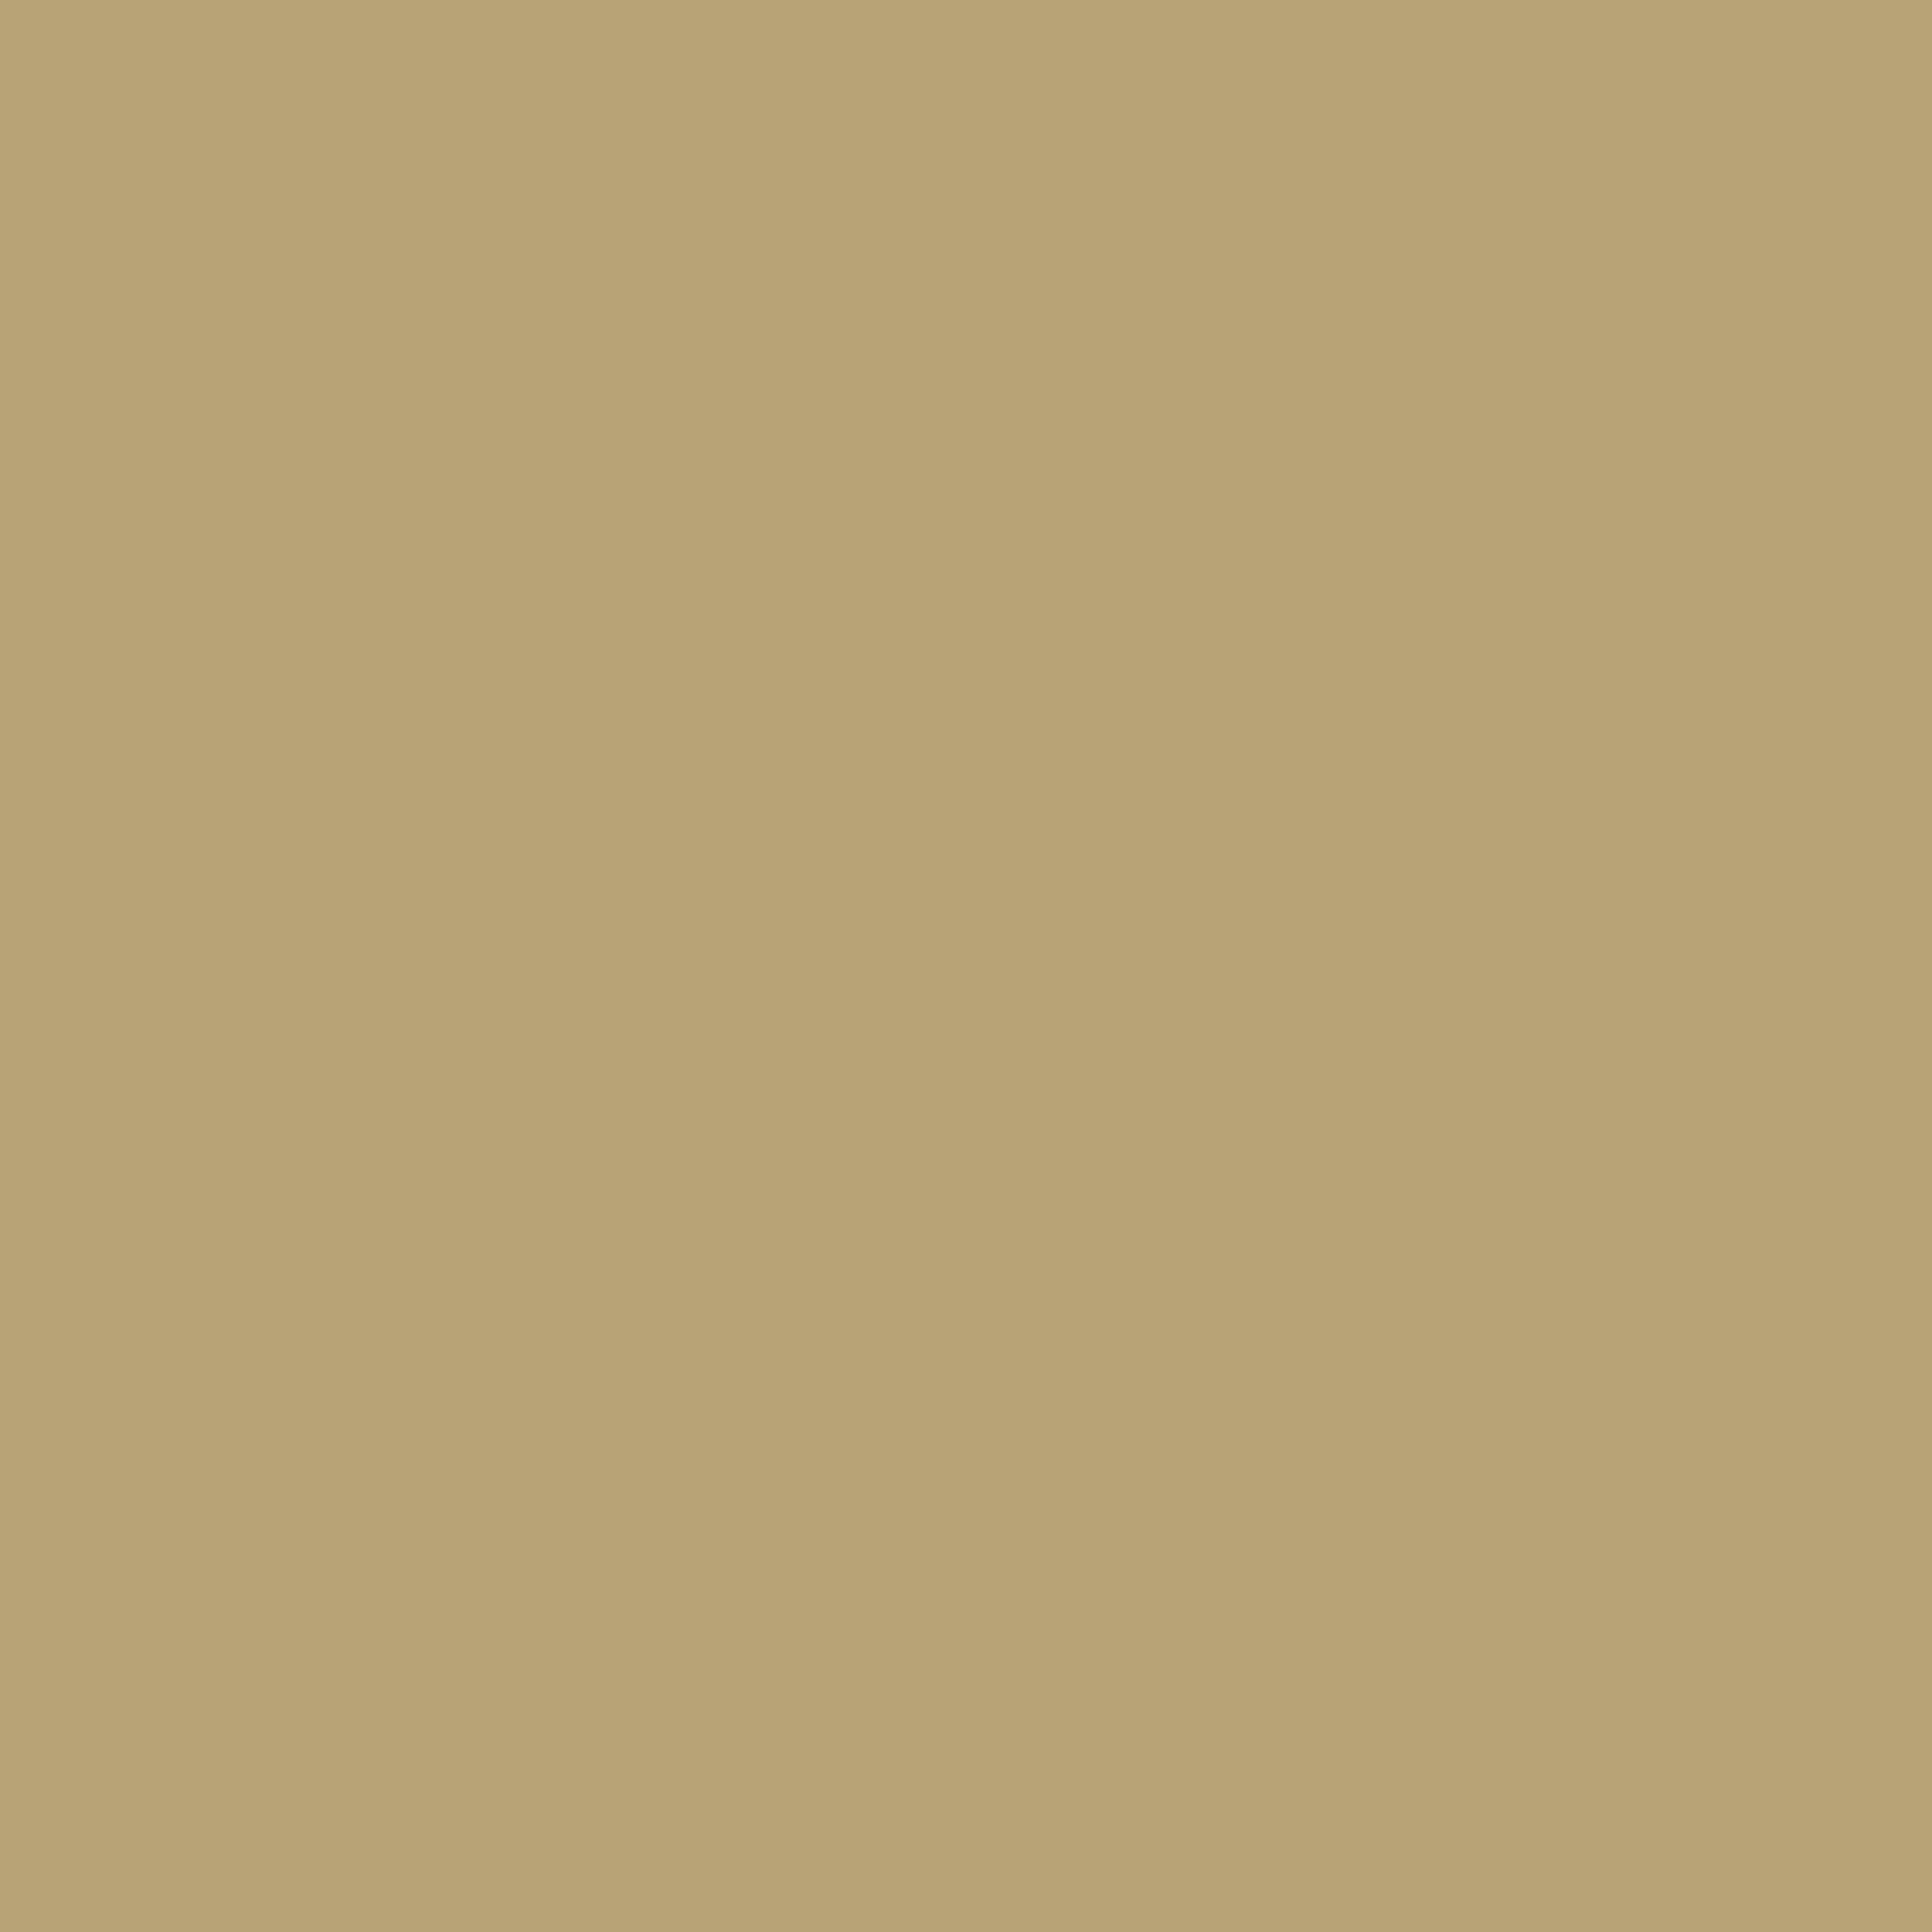 Sand-taupe